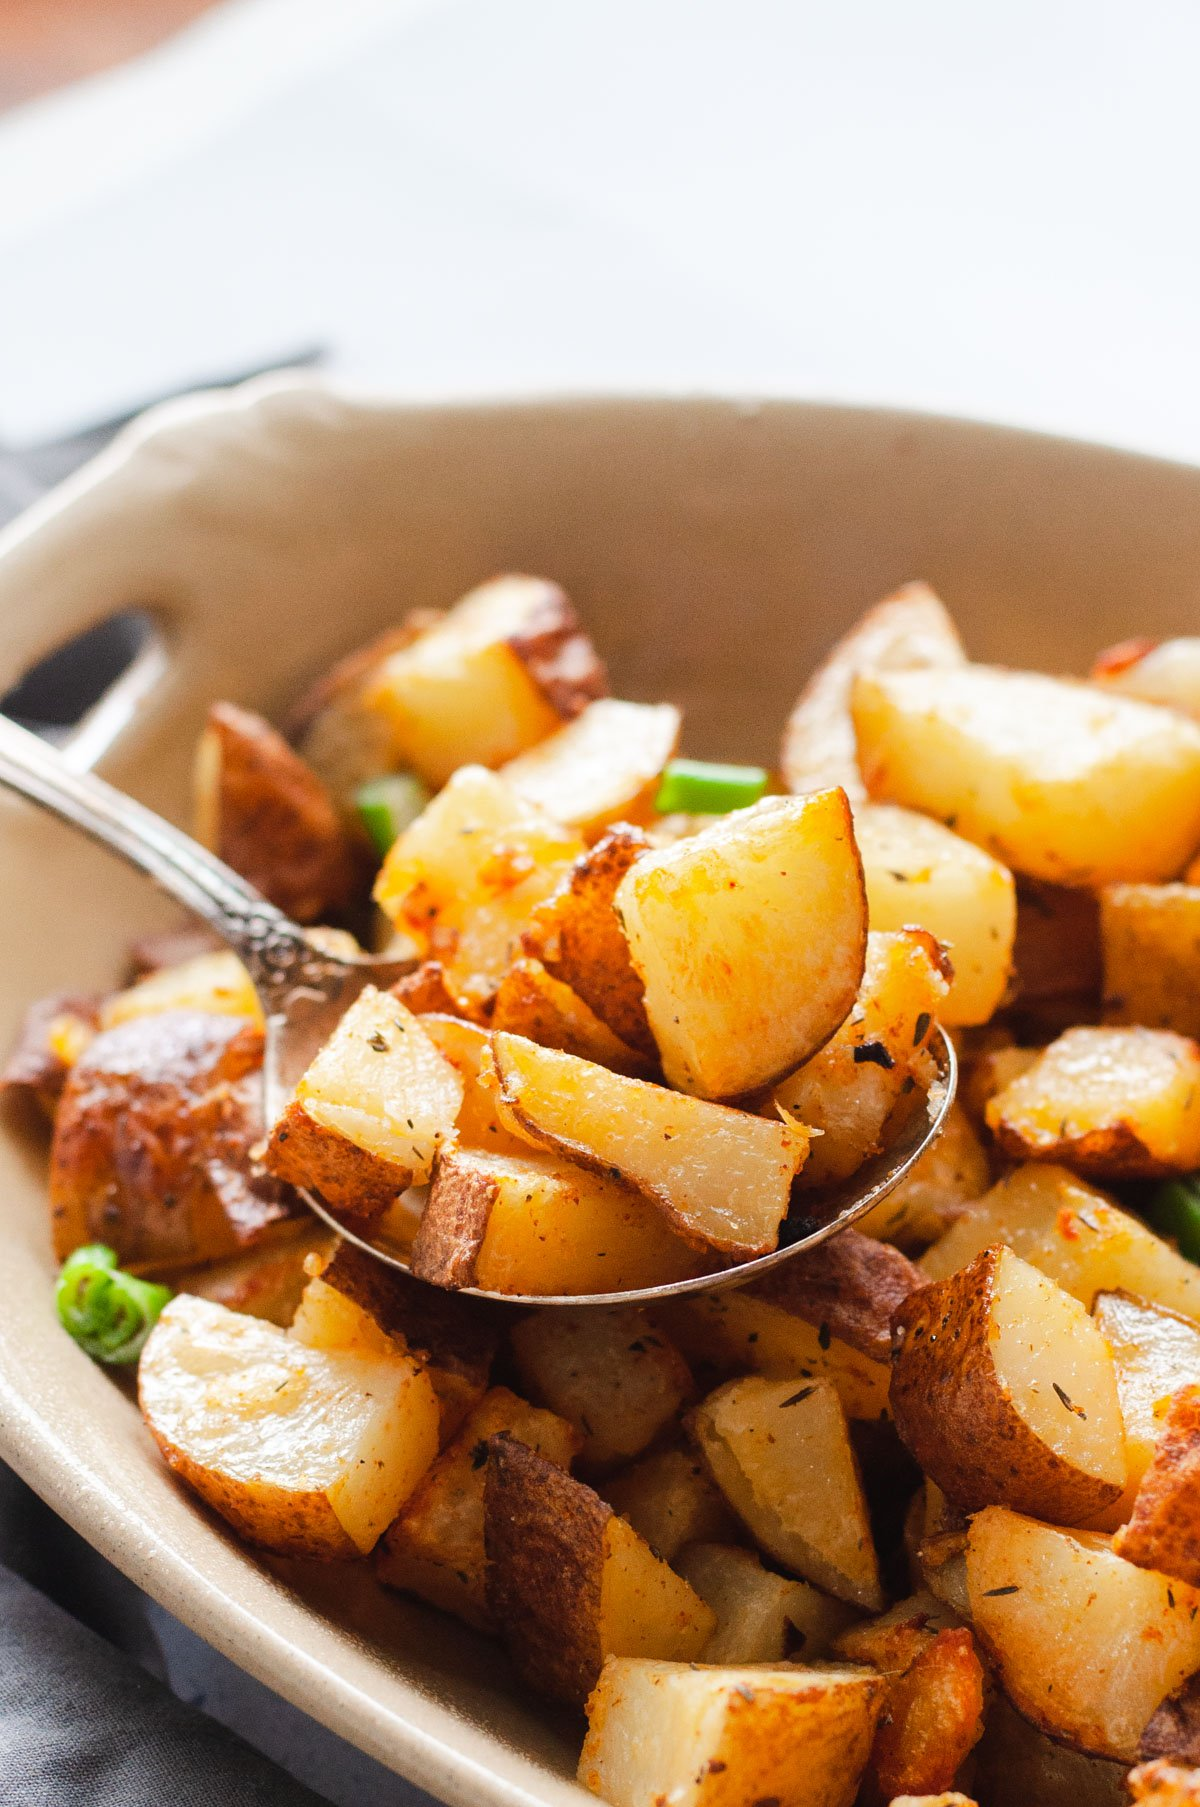 Close up view of potatoes being scooped with a spoon